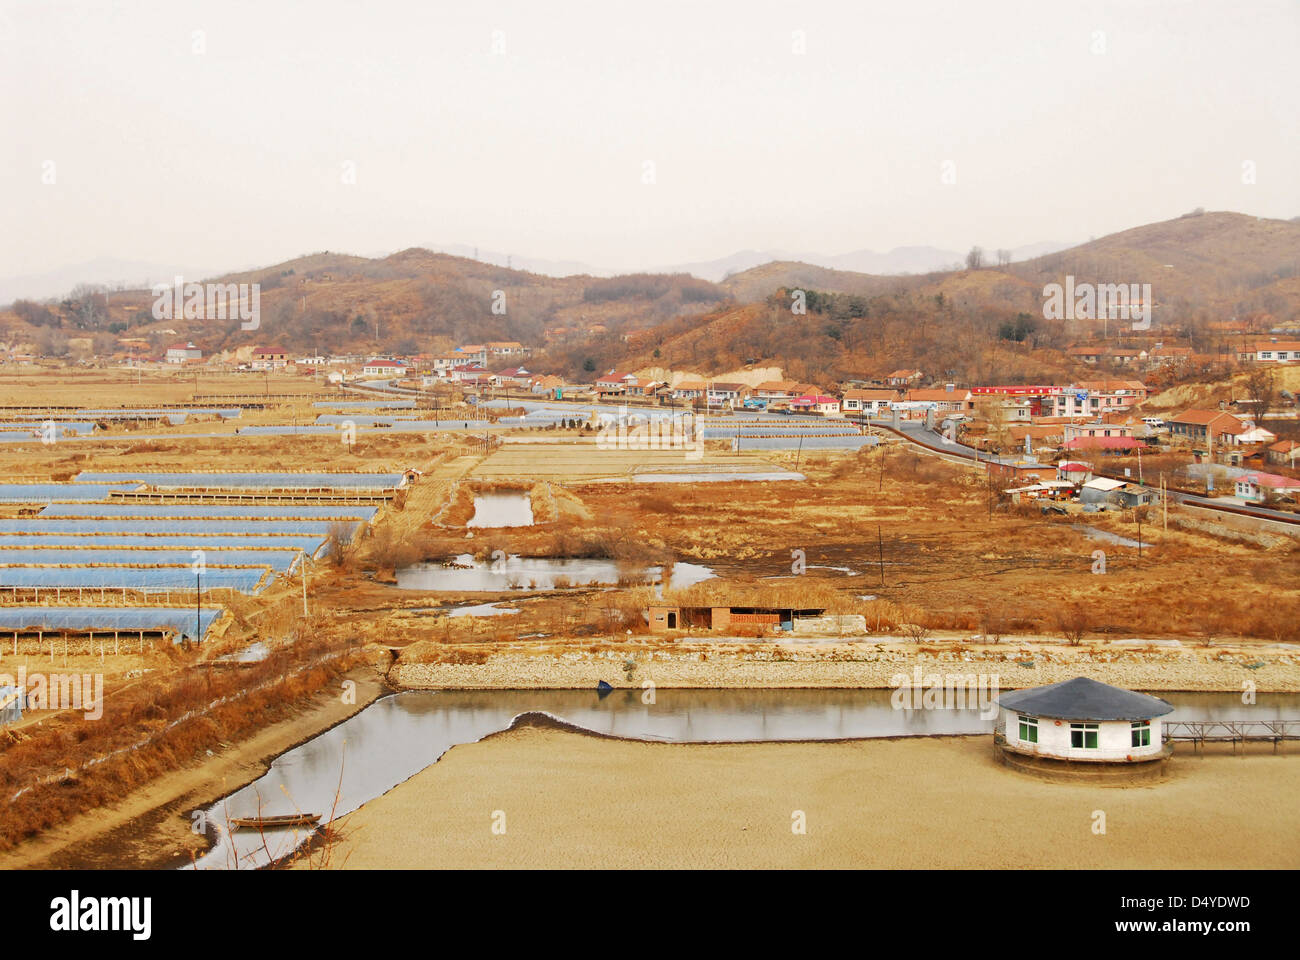 China, Dandong, elevated view of a salt pond with human settlement and mountains in the background - Stock Image